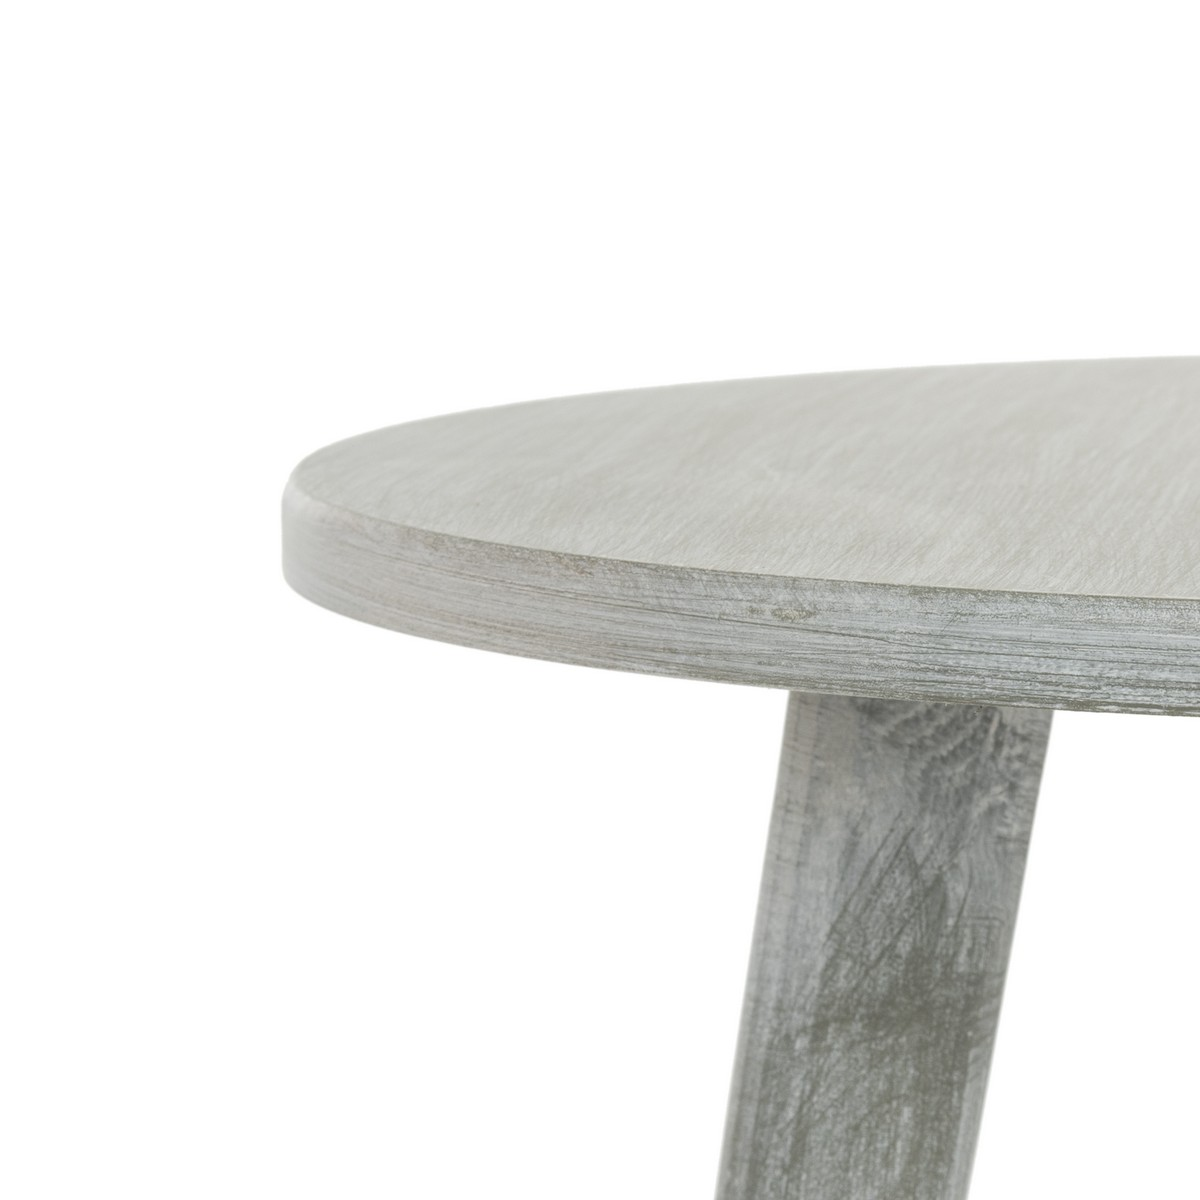 accent tables furniture safavieh detail gray round table product details bedroom curtains ikea dining pedestal base only patio serving small side lamps marble with chairs